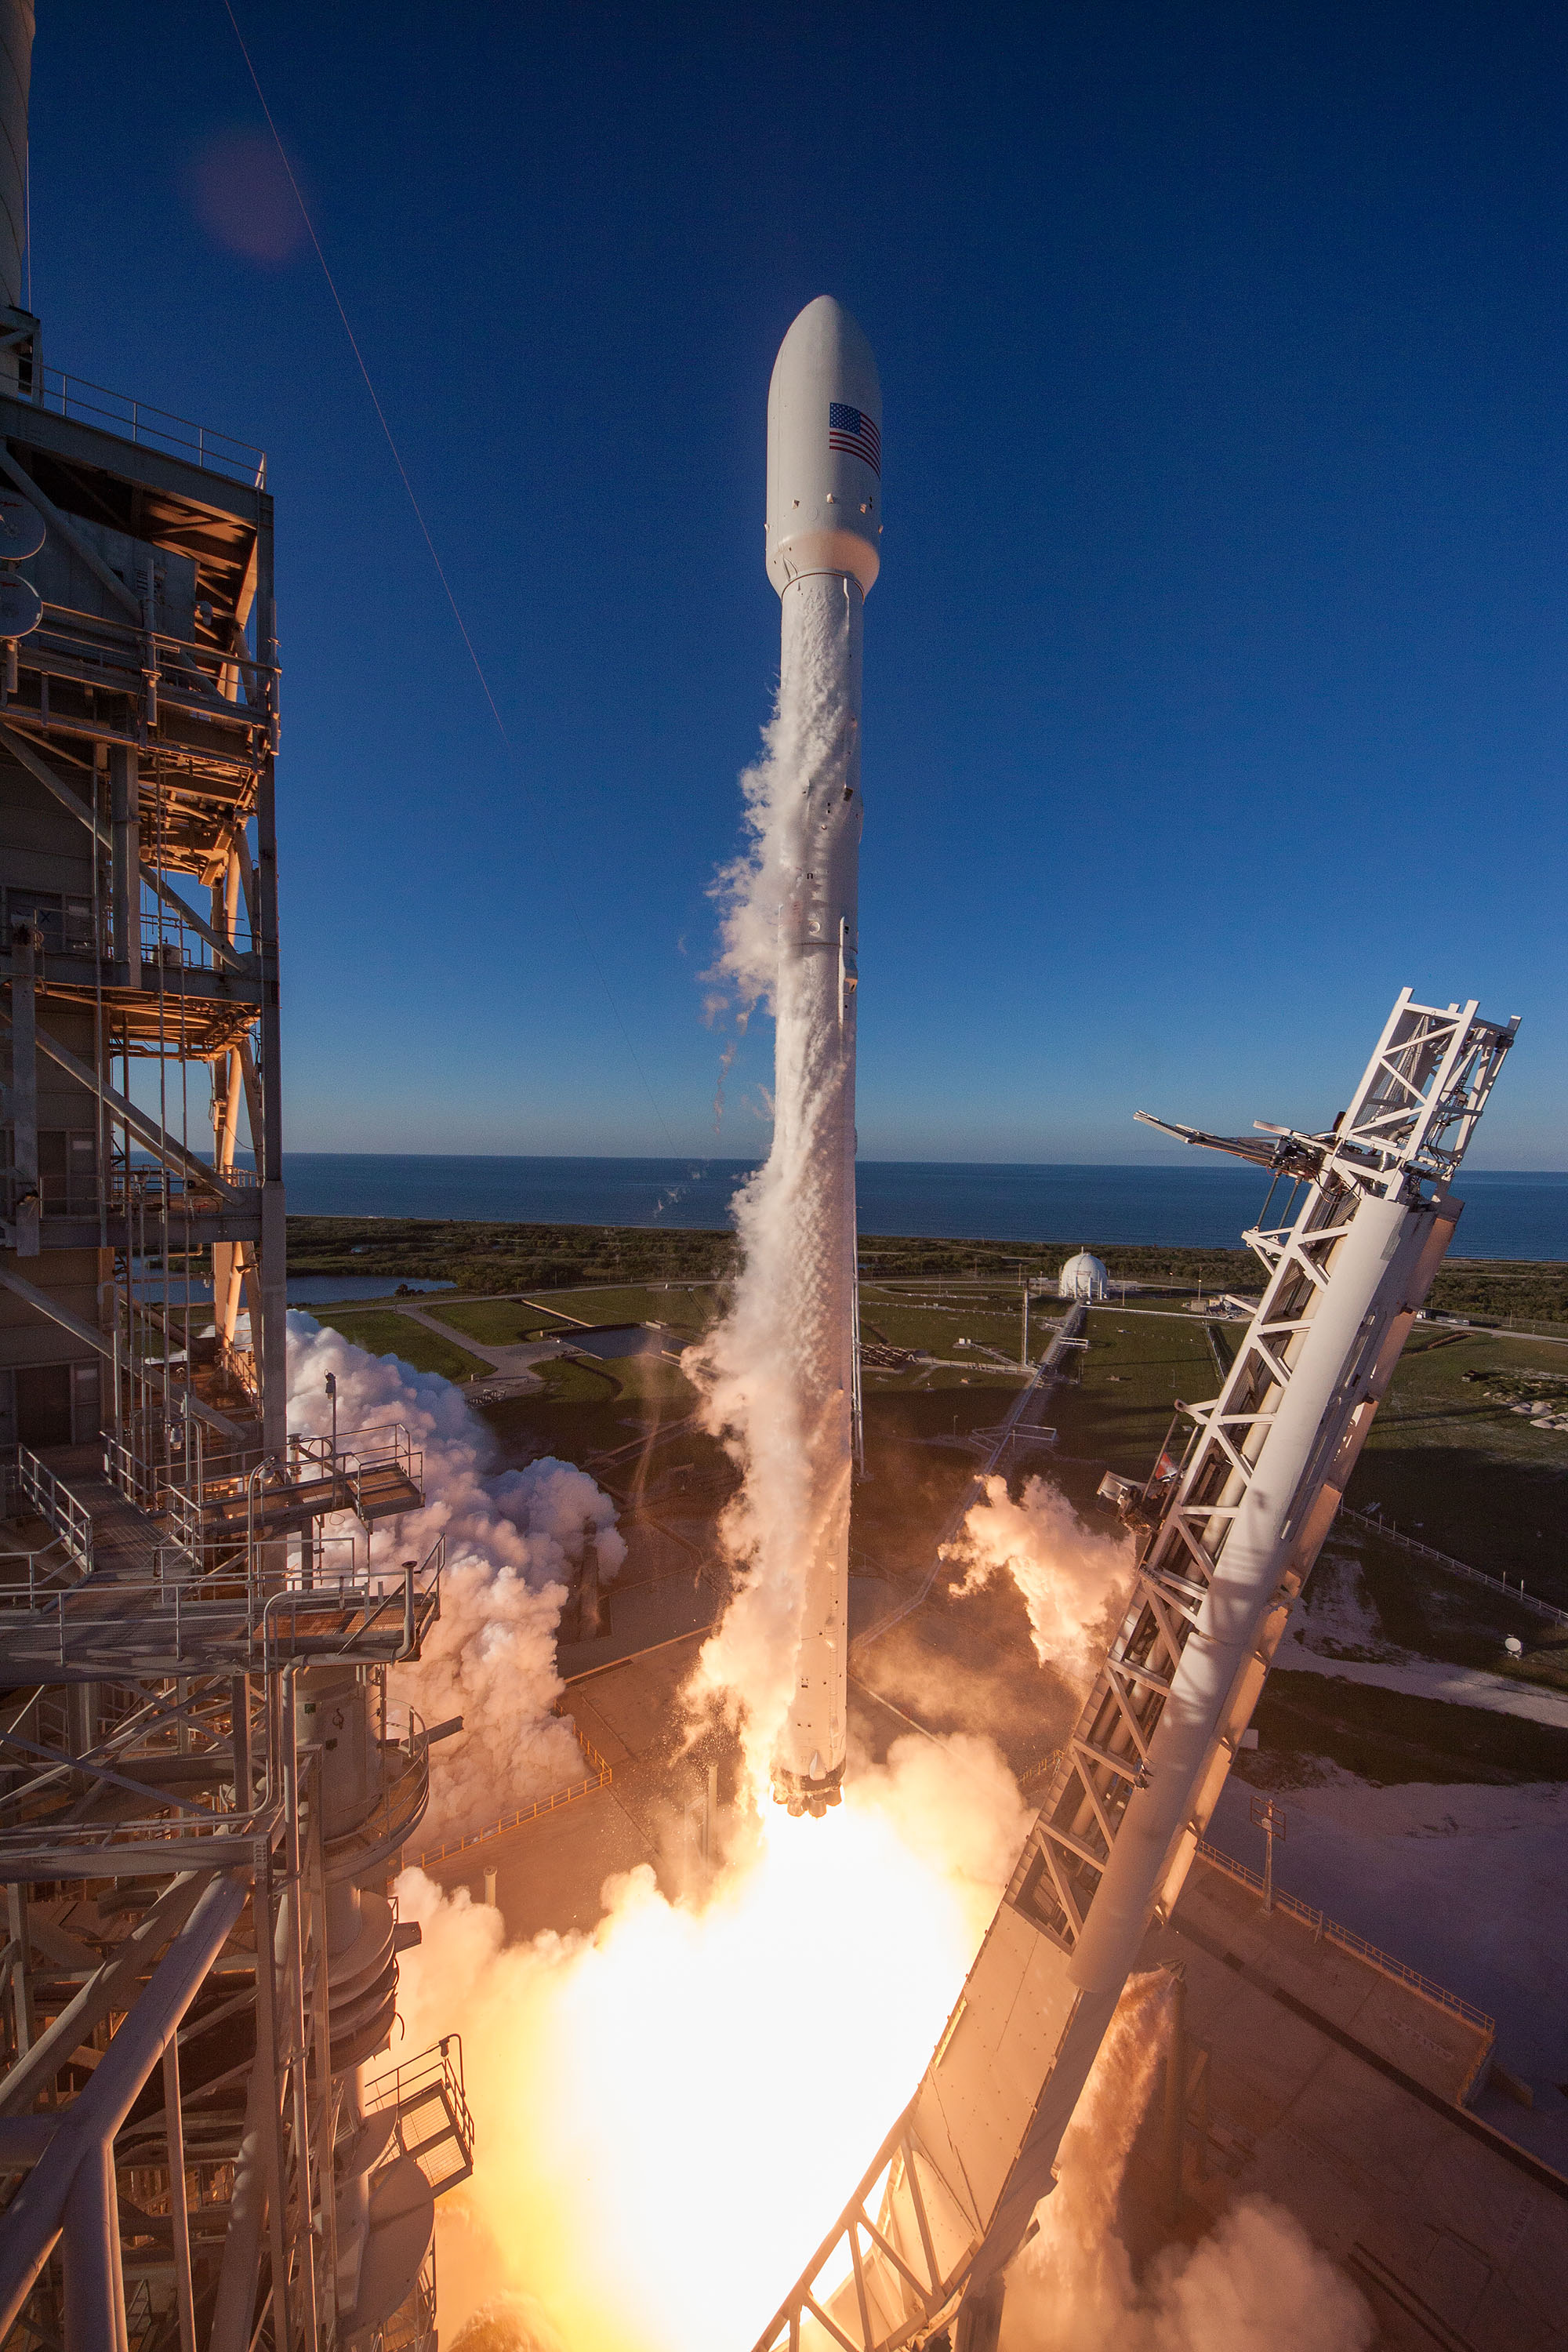 SpaceX Falcon 9 to Launch Koreasat 5A | DanSpace77